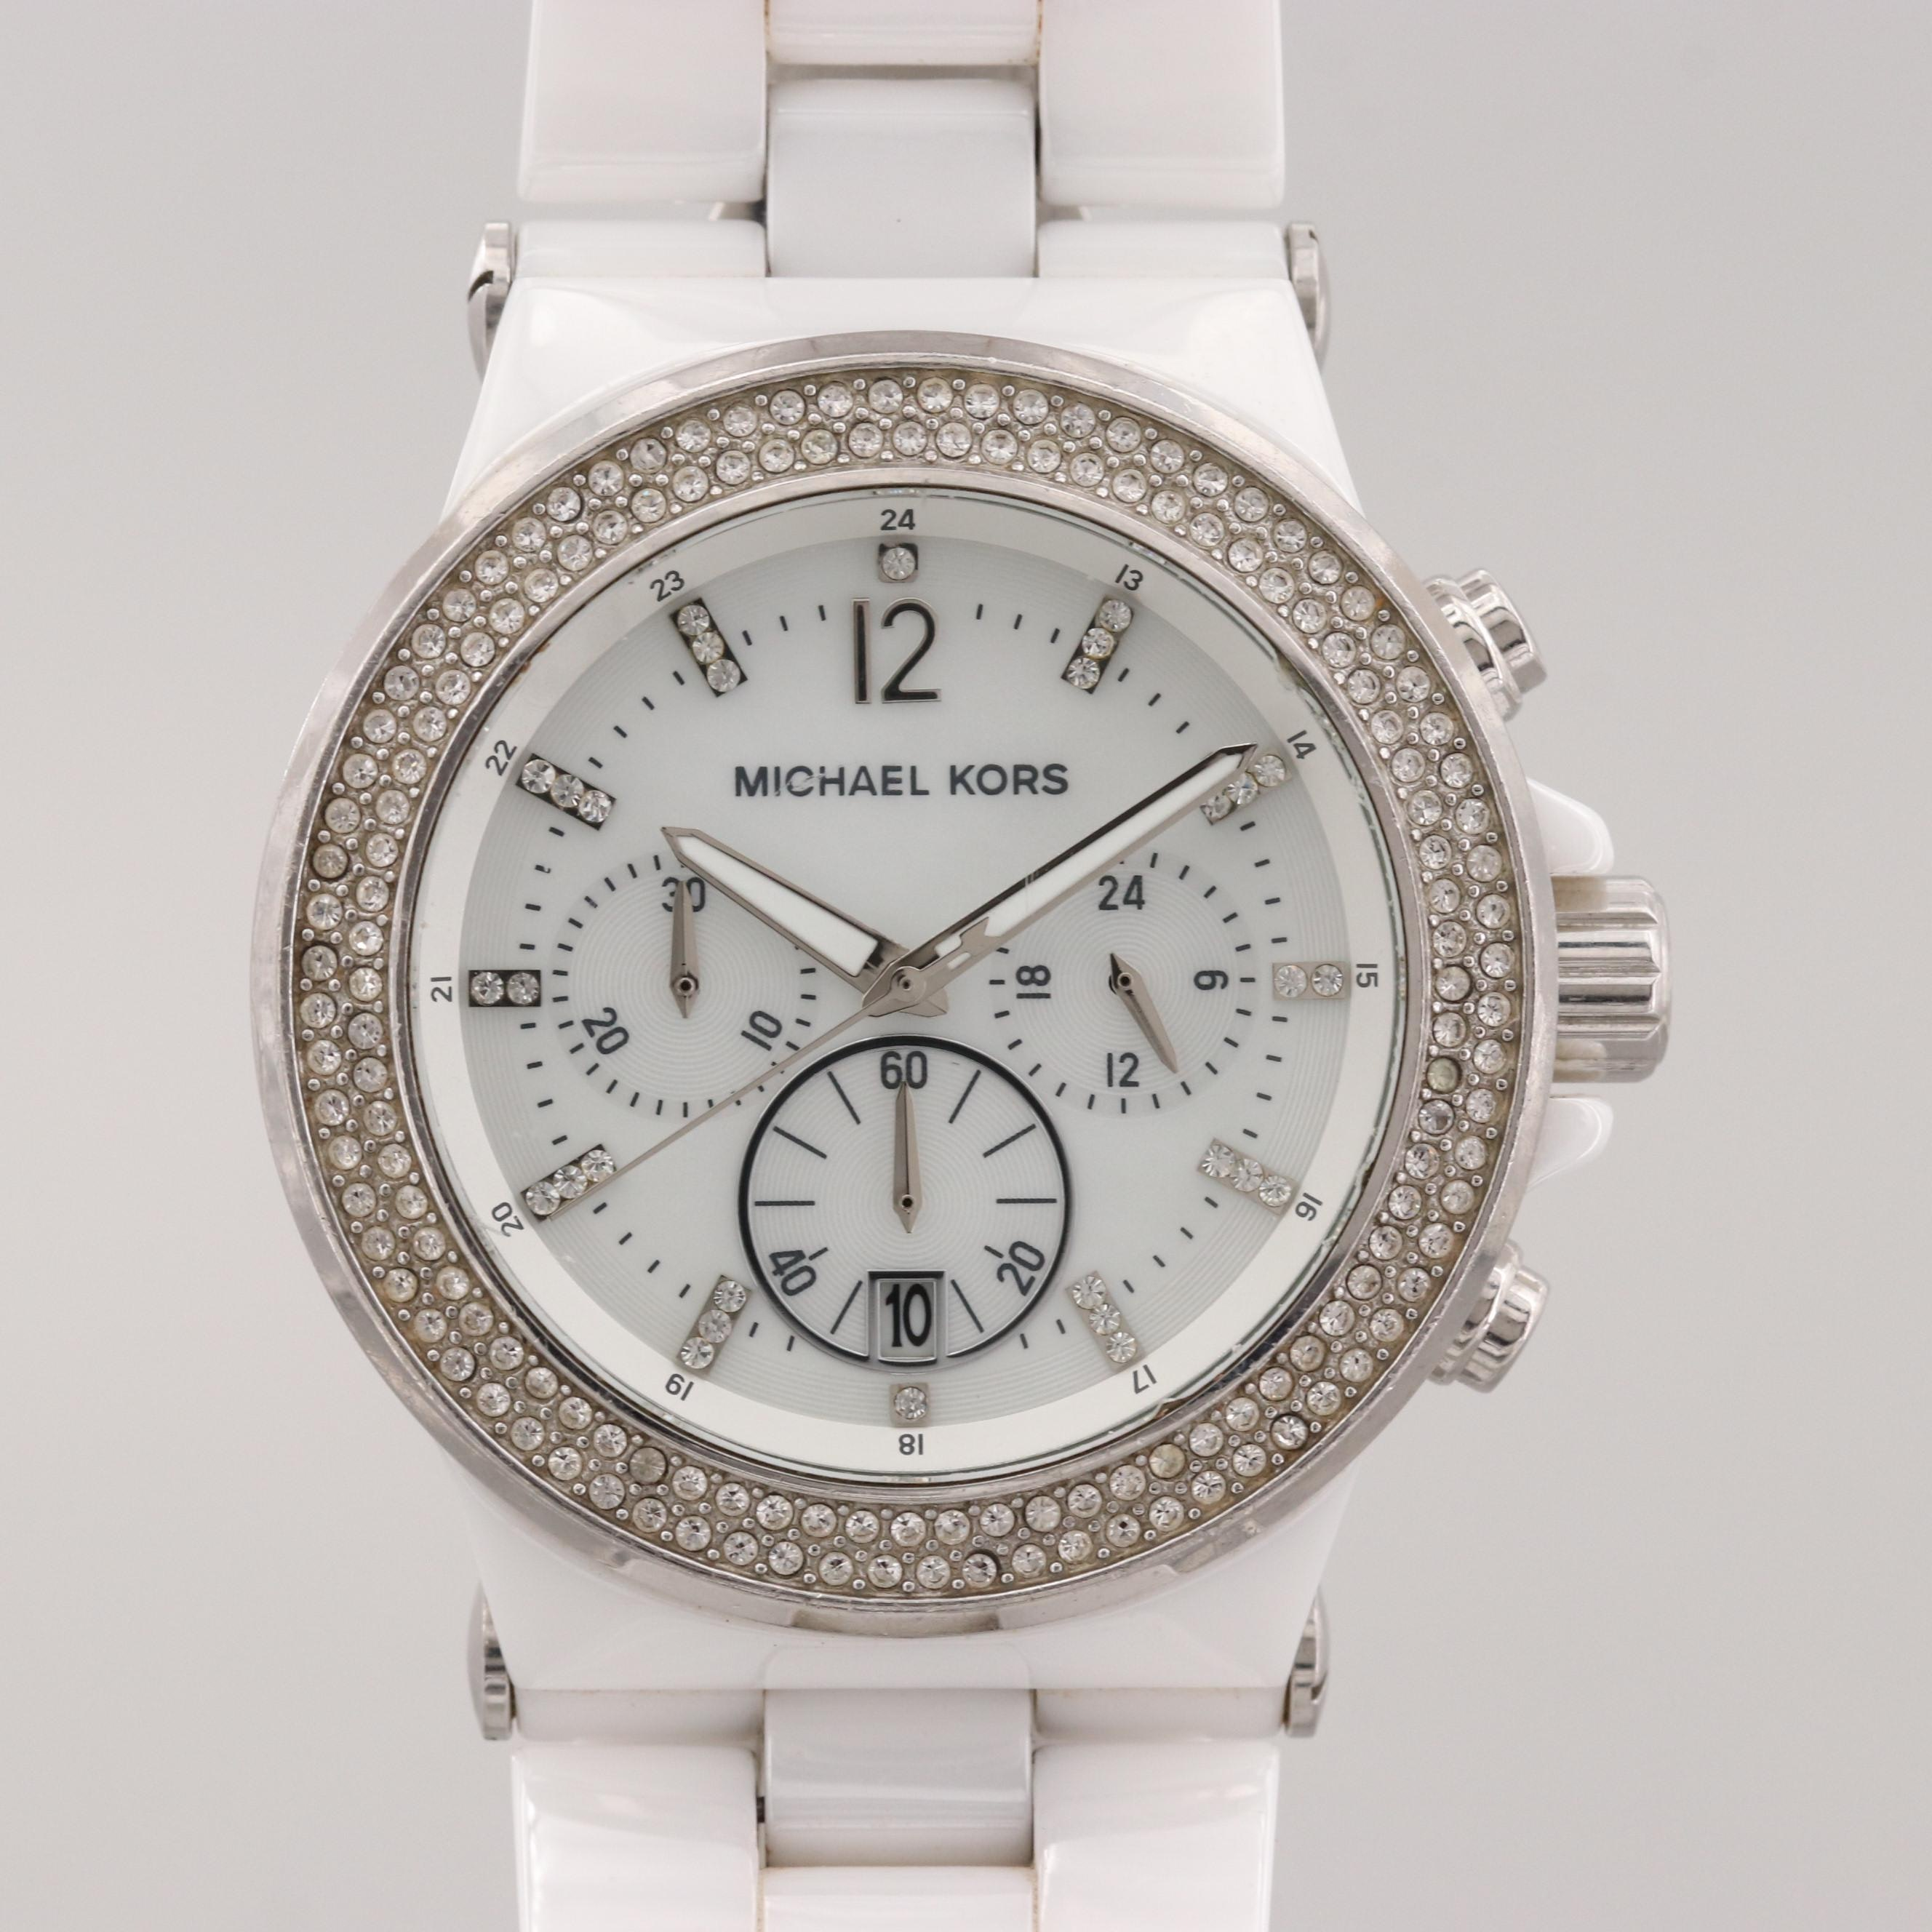 Michael Kors MK-5391 Ceramic Quartz Chronograph Wristwatch With Glass Crystals